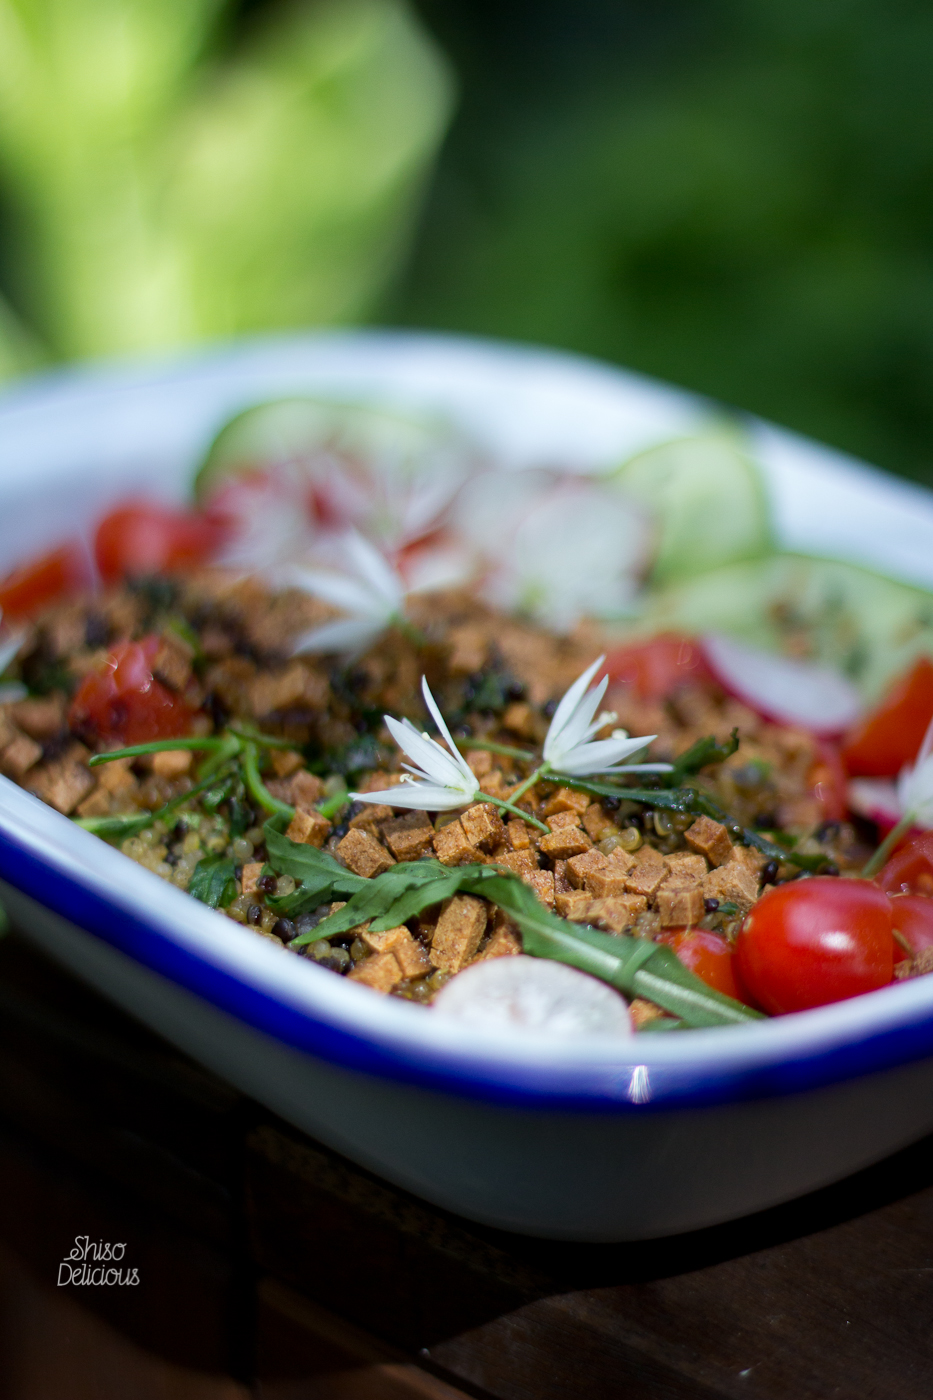 Pan-fried Fakon topping on a quinoa and rucola salad.